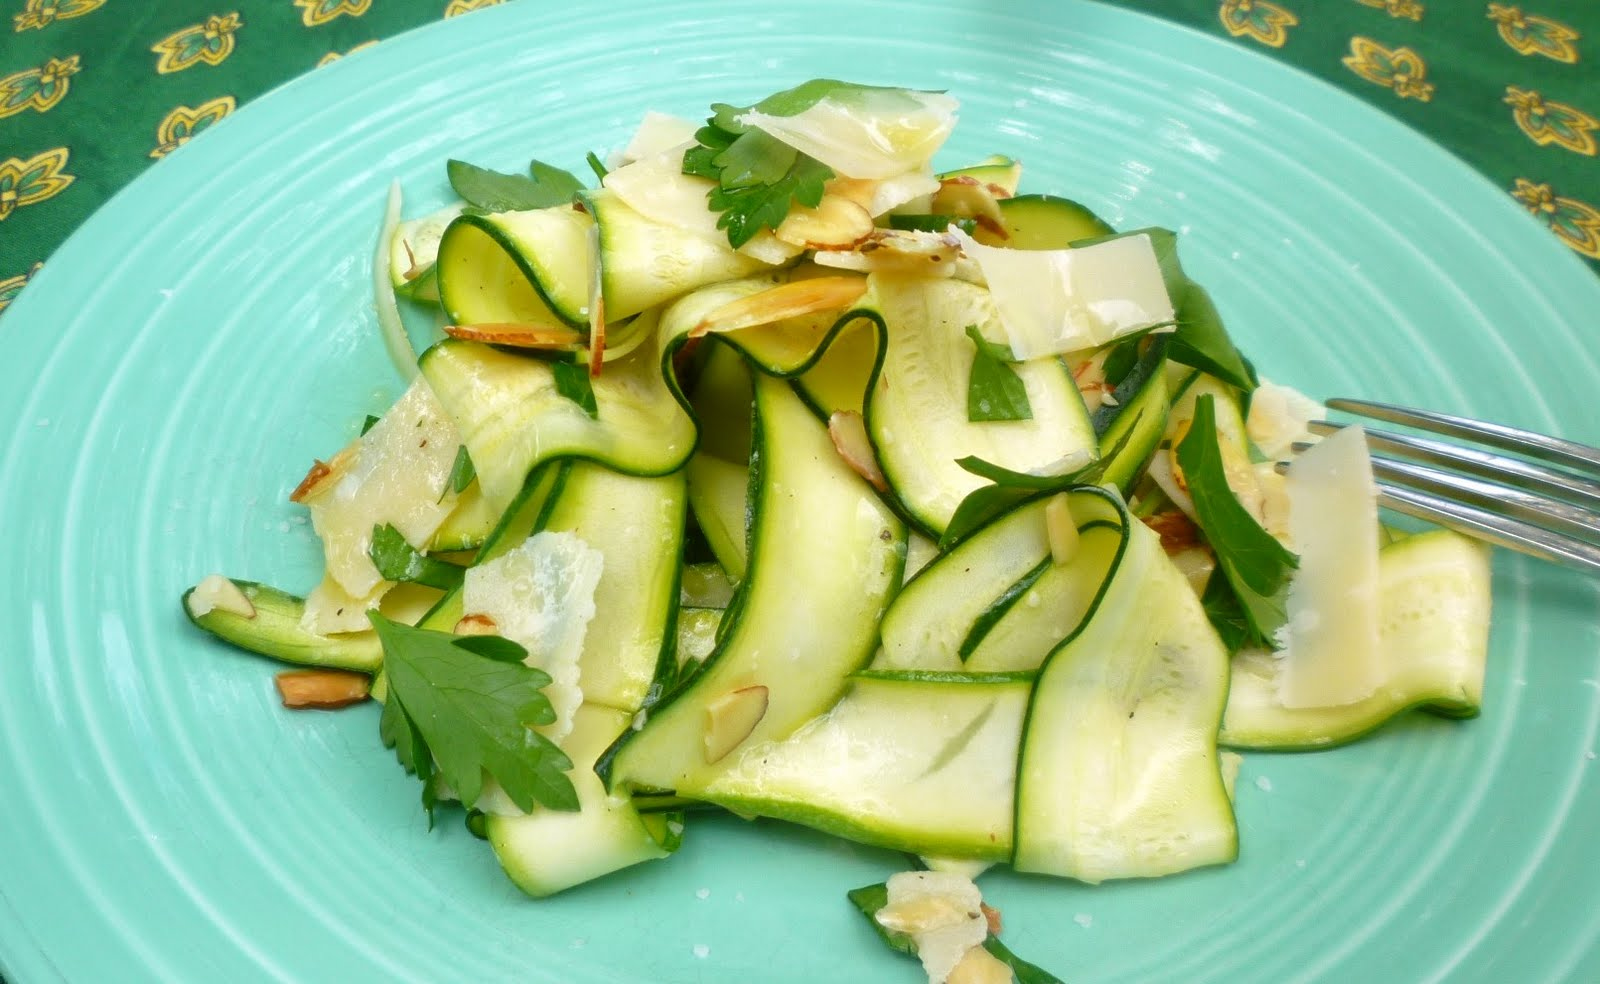 For Love of the TableShaved Zucchini Salad with Almonds, Parsley